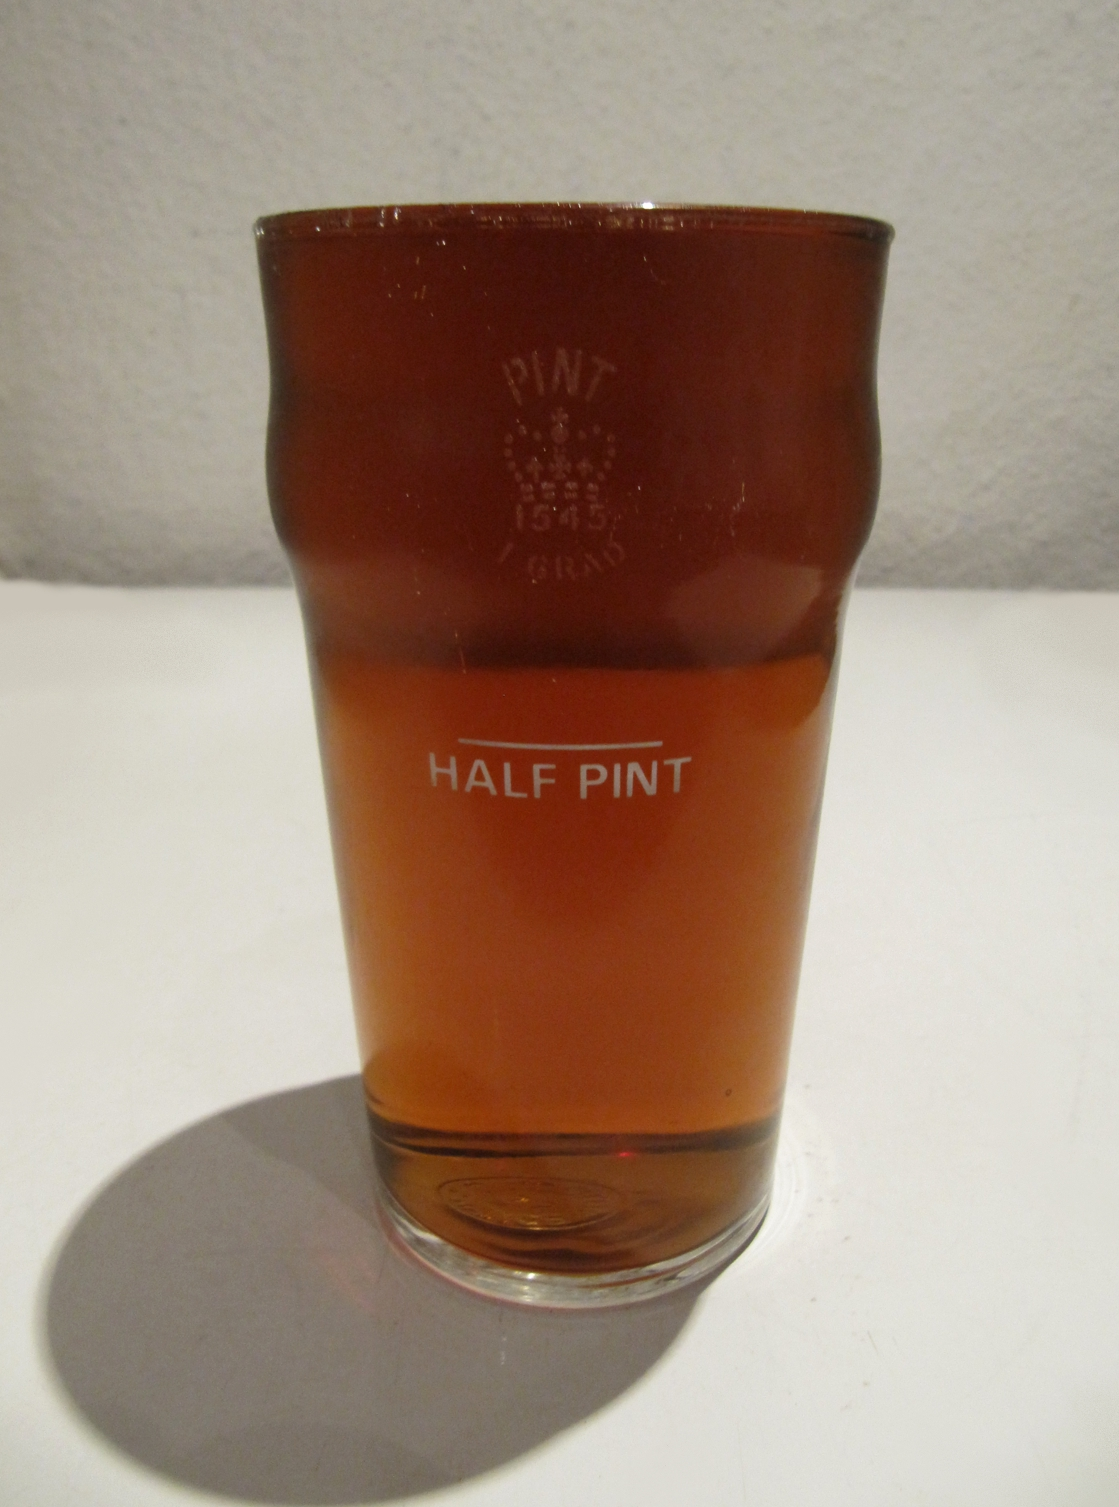 Pint wikipedia nvjuhfo Image collections